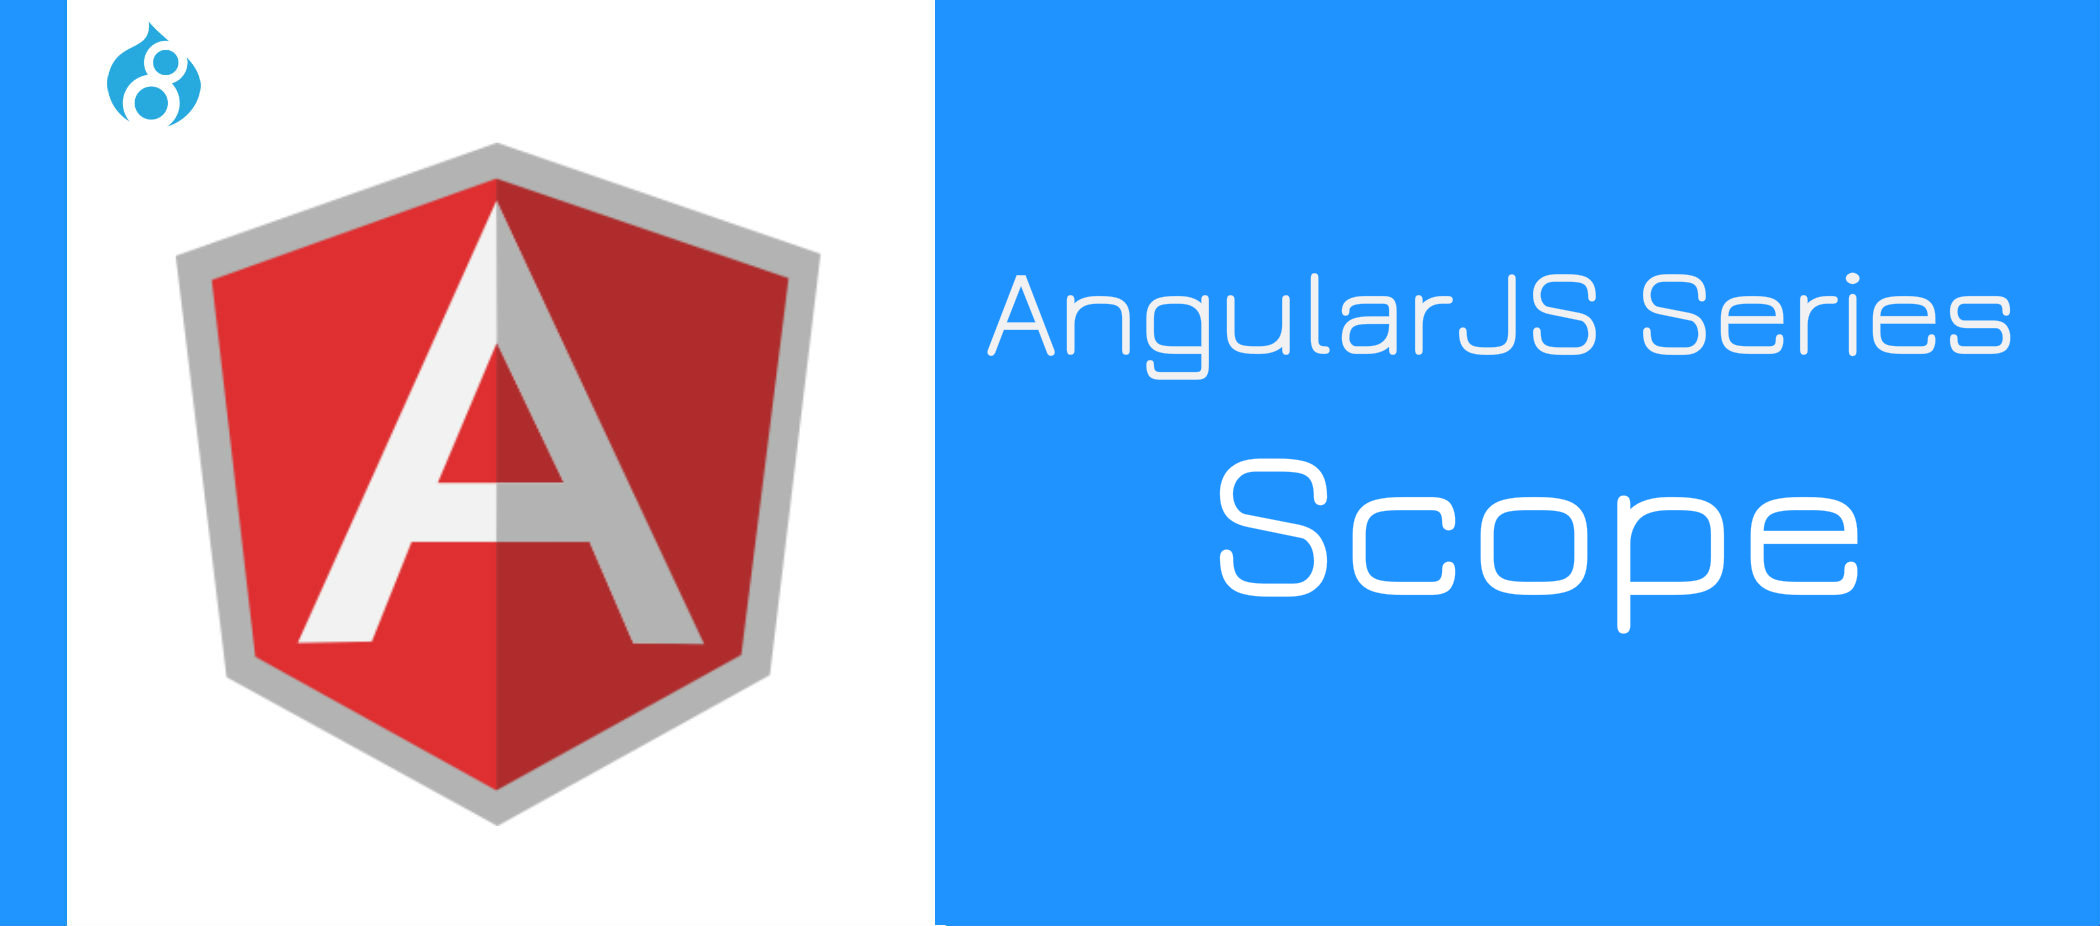 AngularJS Series: An introduction to Scope